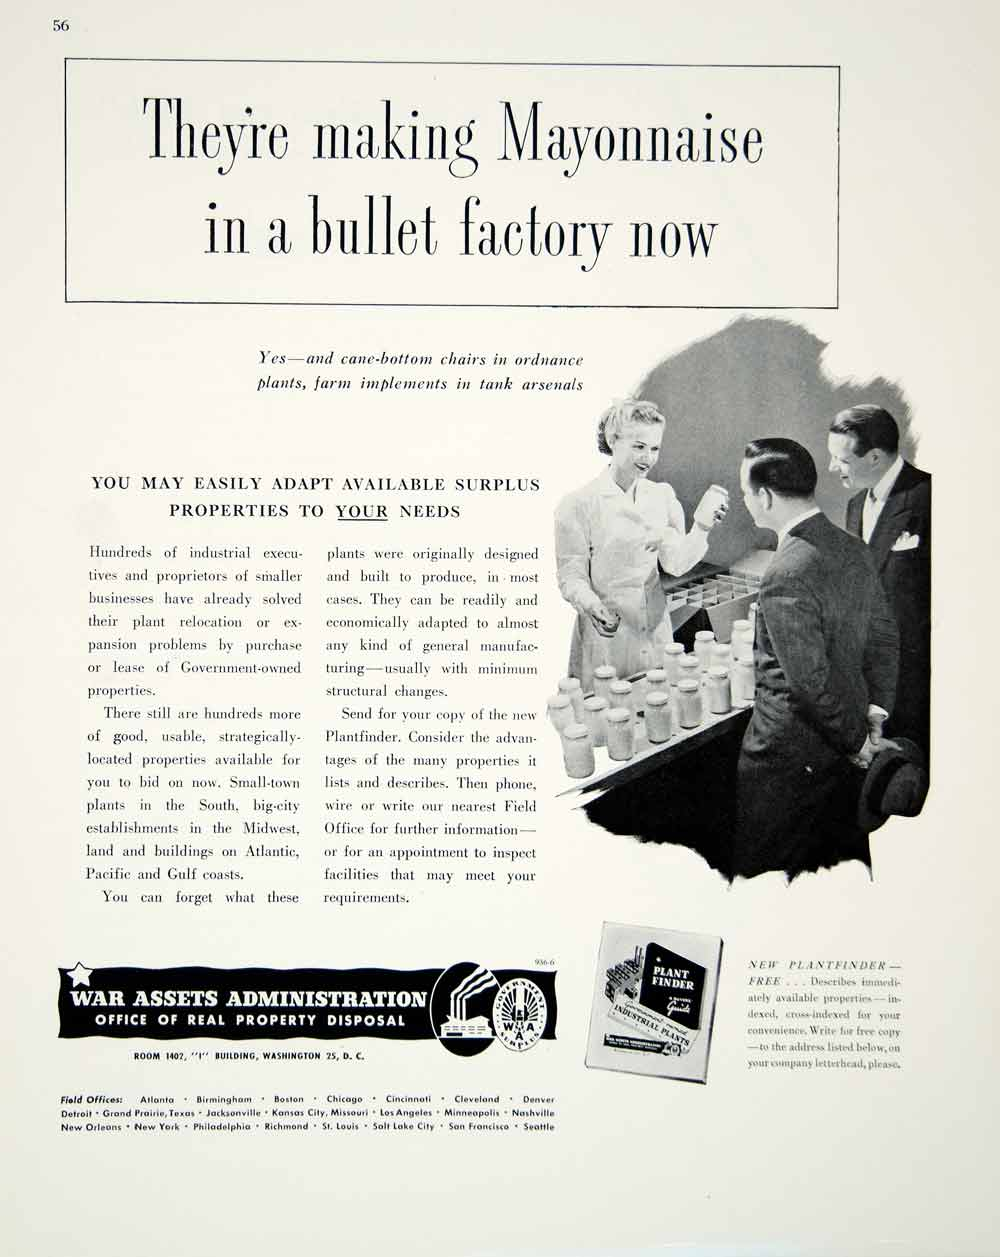 1948 Ad Post-WWII War Assets Administration Plant Factory Mayonnaise Bullet FTM3